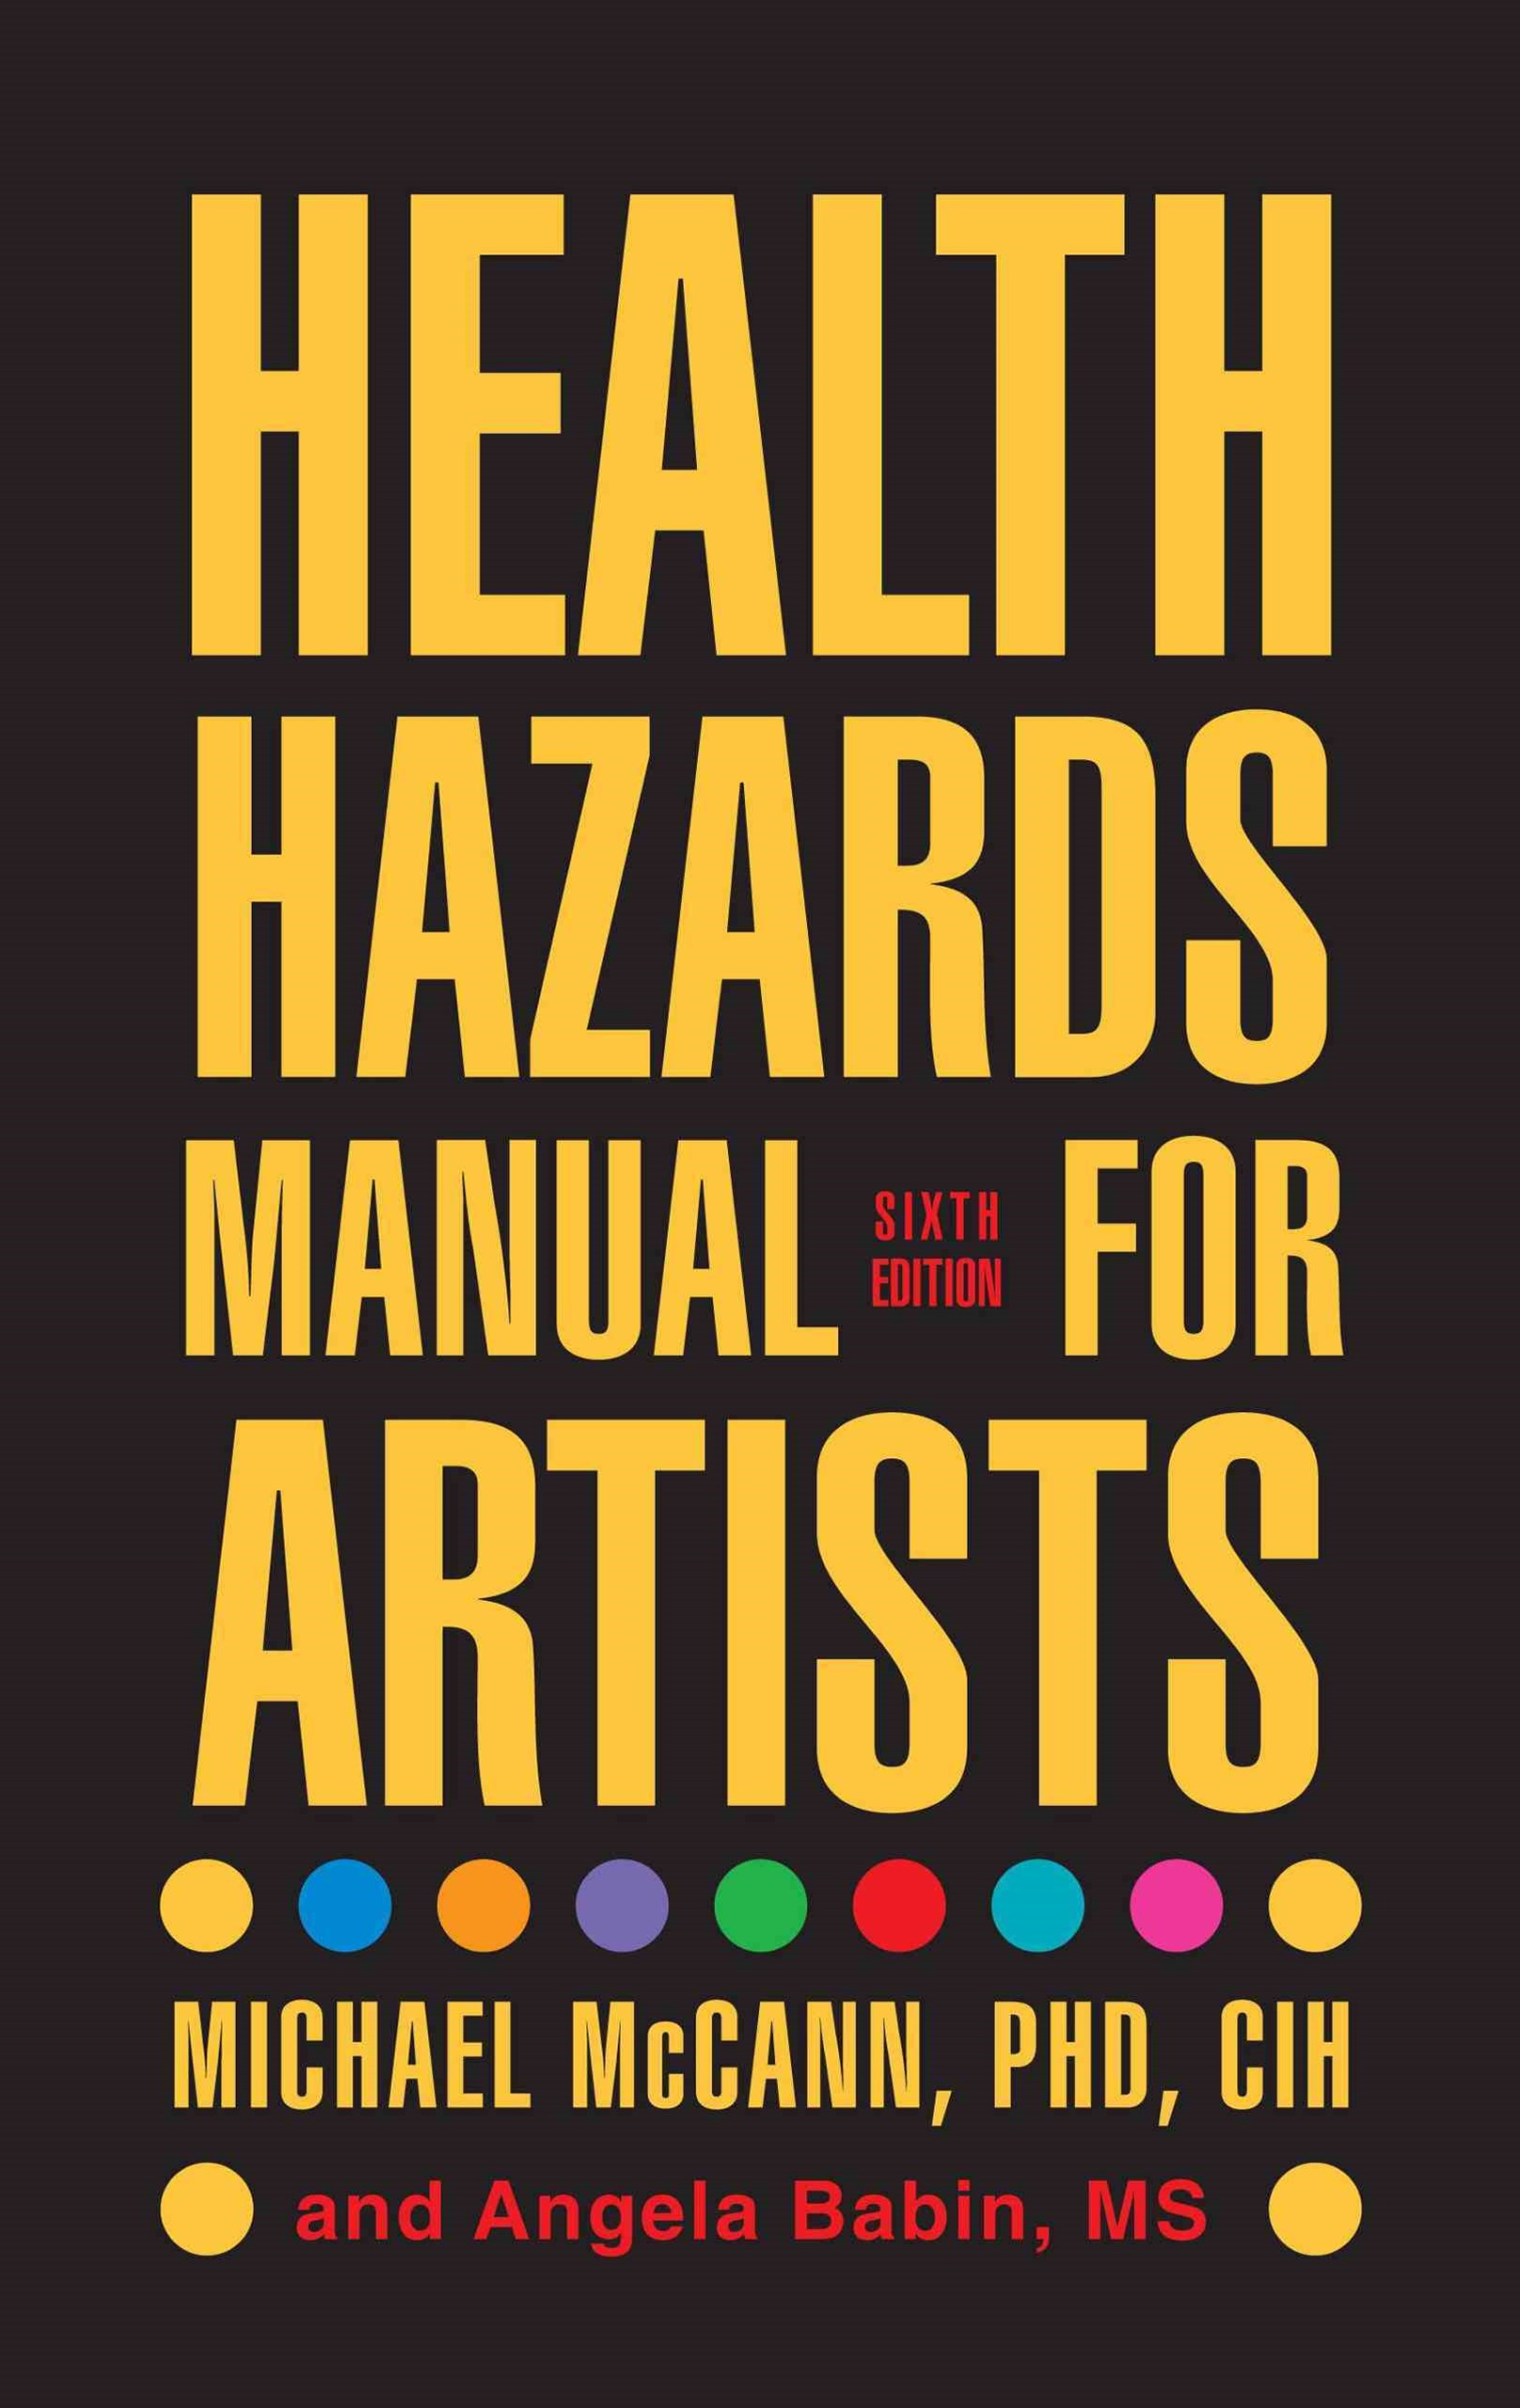 Health Hazards Manual for Artists